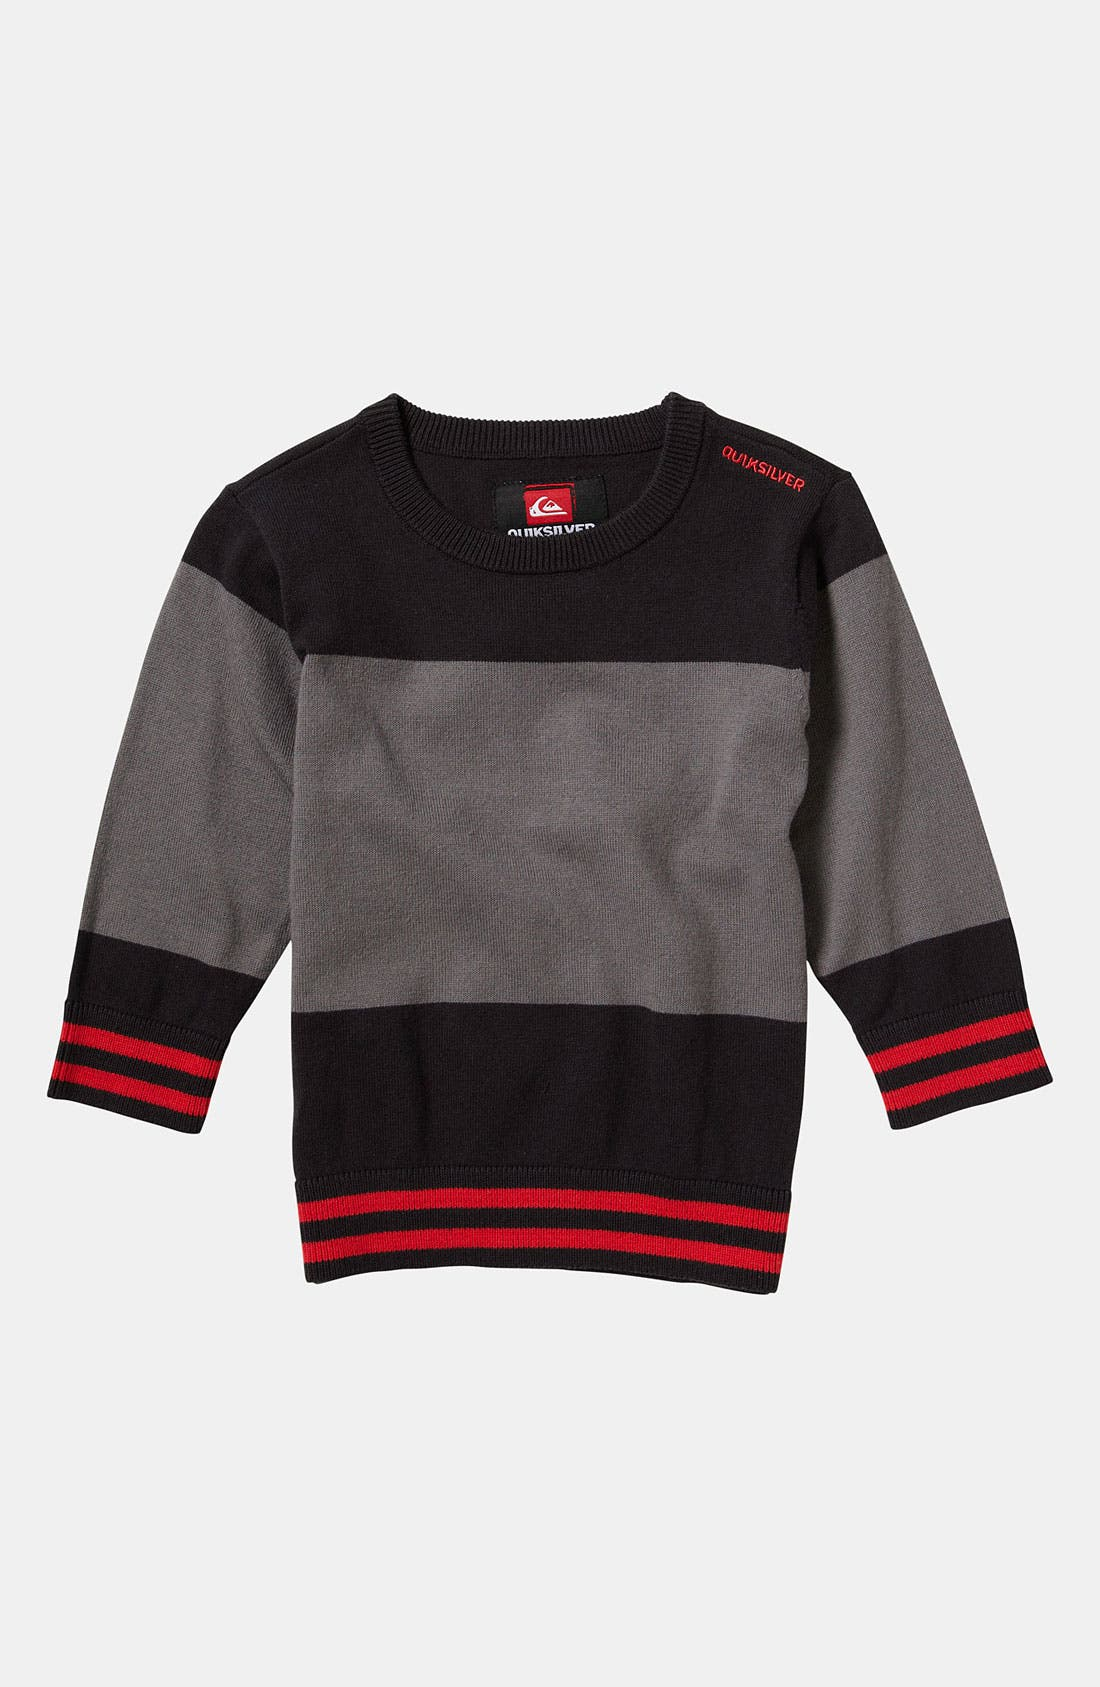 Main Image - Quiksilver 'Wild Card' Sweater (Infant)